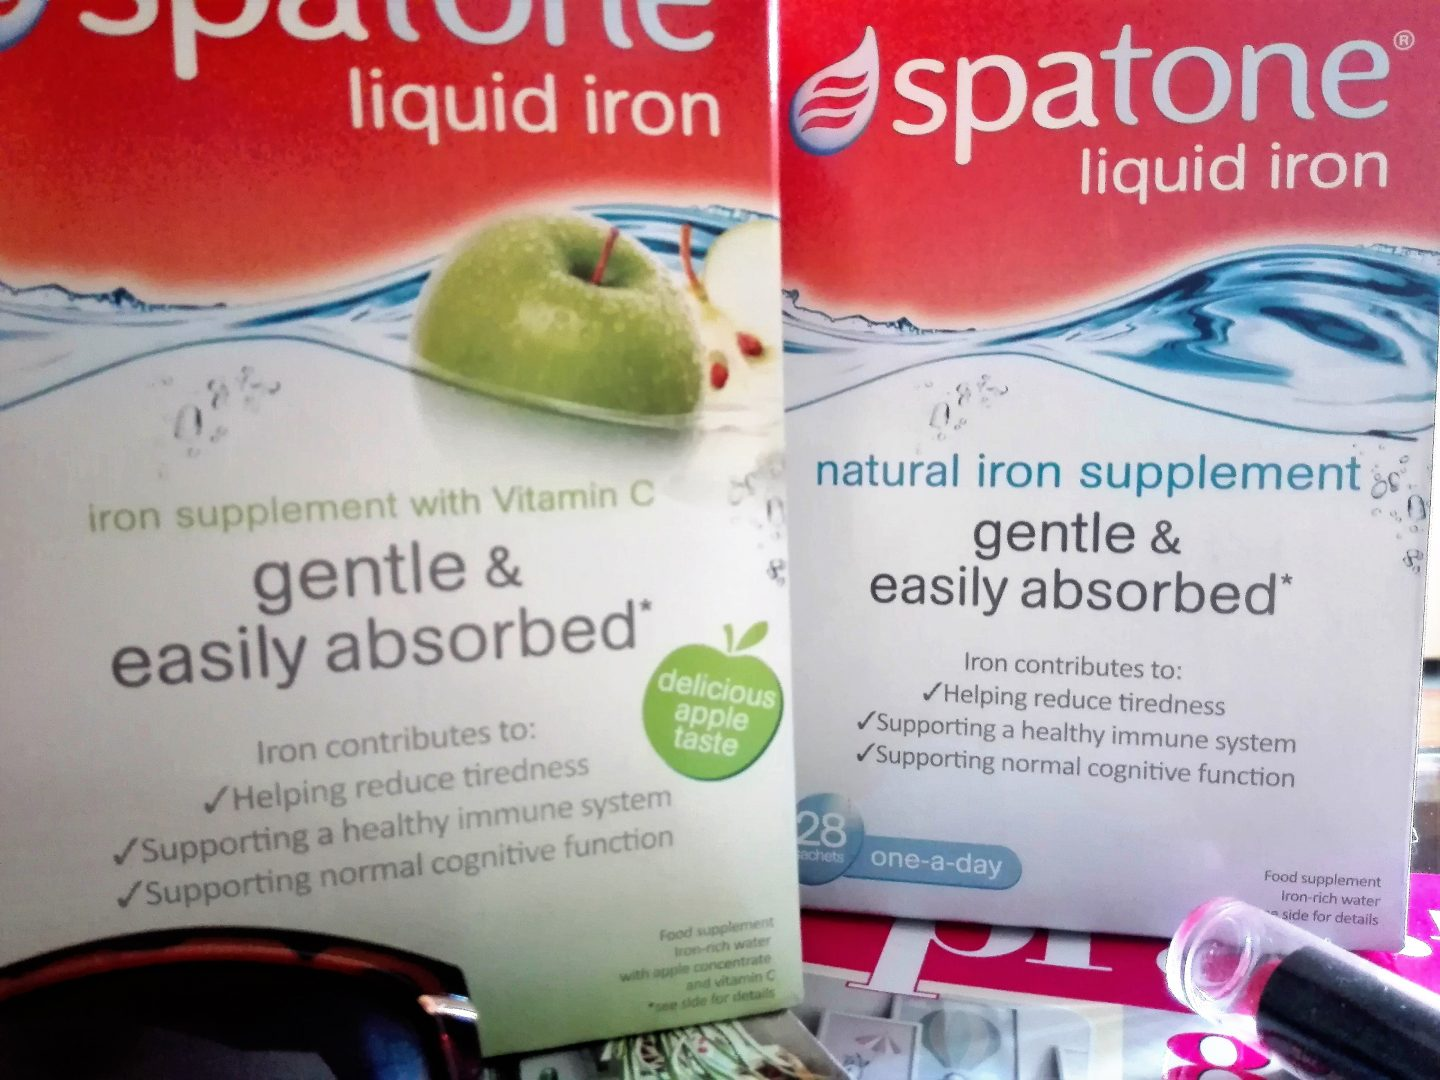 Spatone boxes: original and apple flavoured.